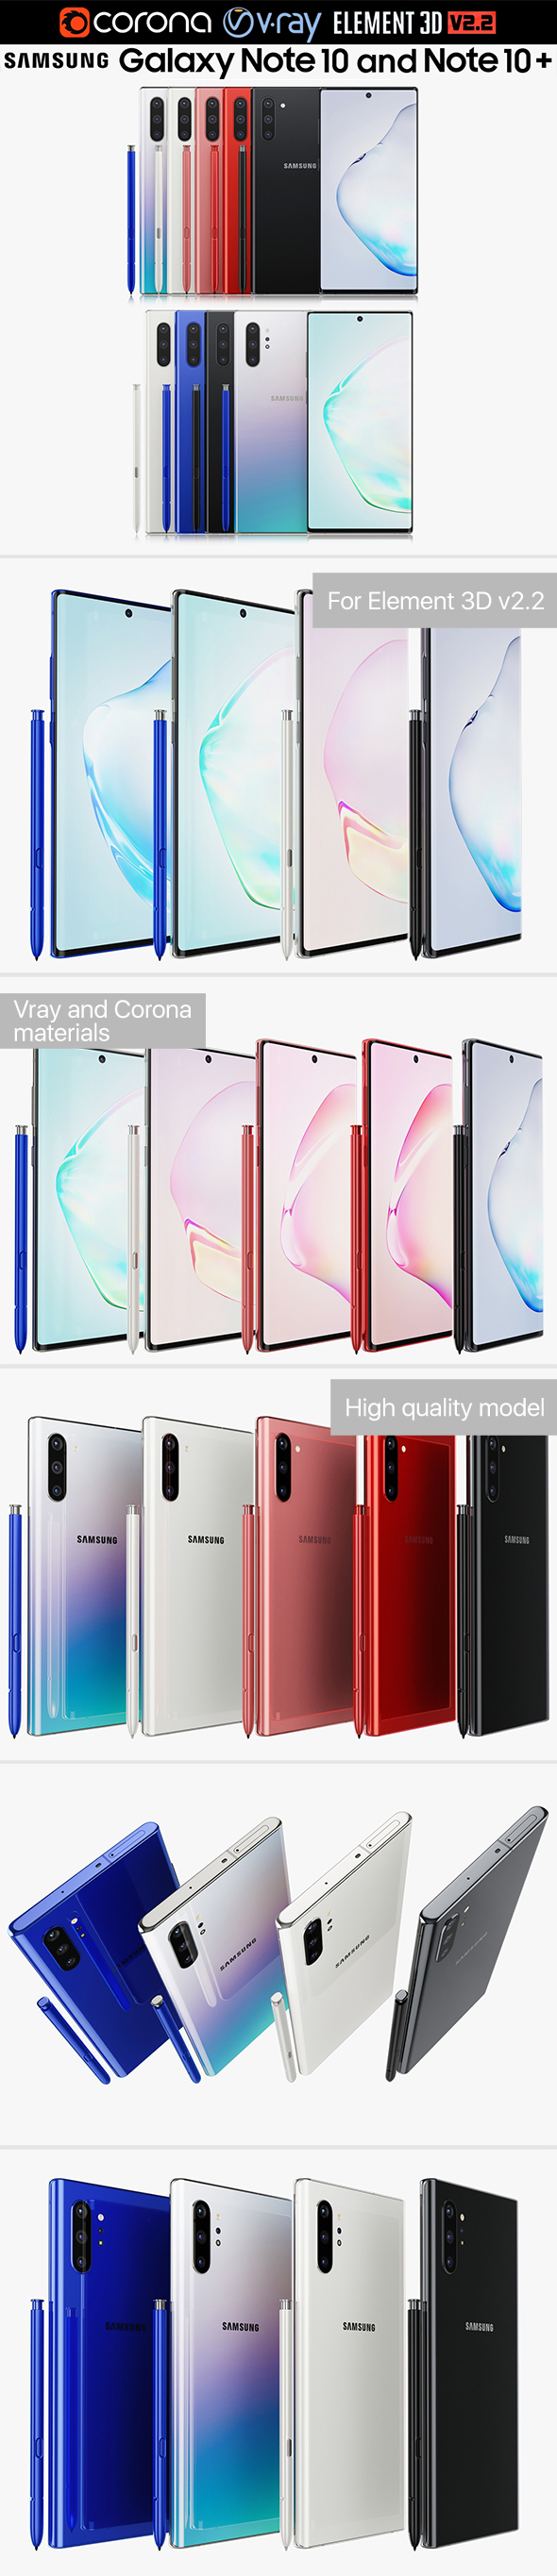 Samsung Galaxy Note 10 and Note 10 Plus All colors